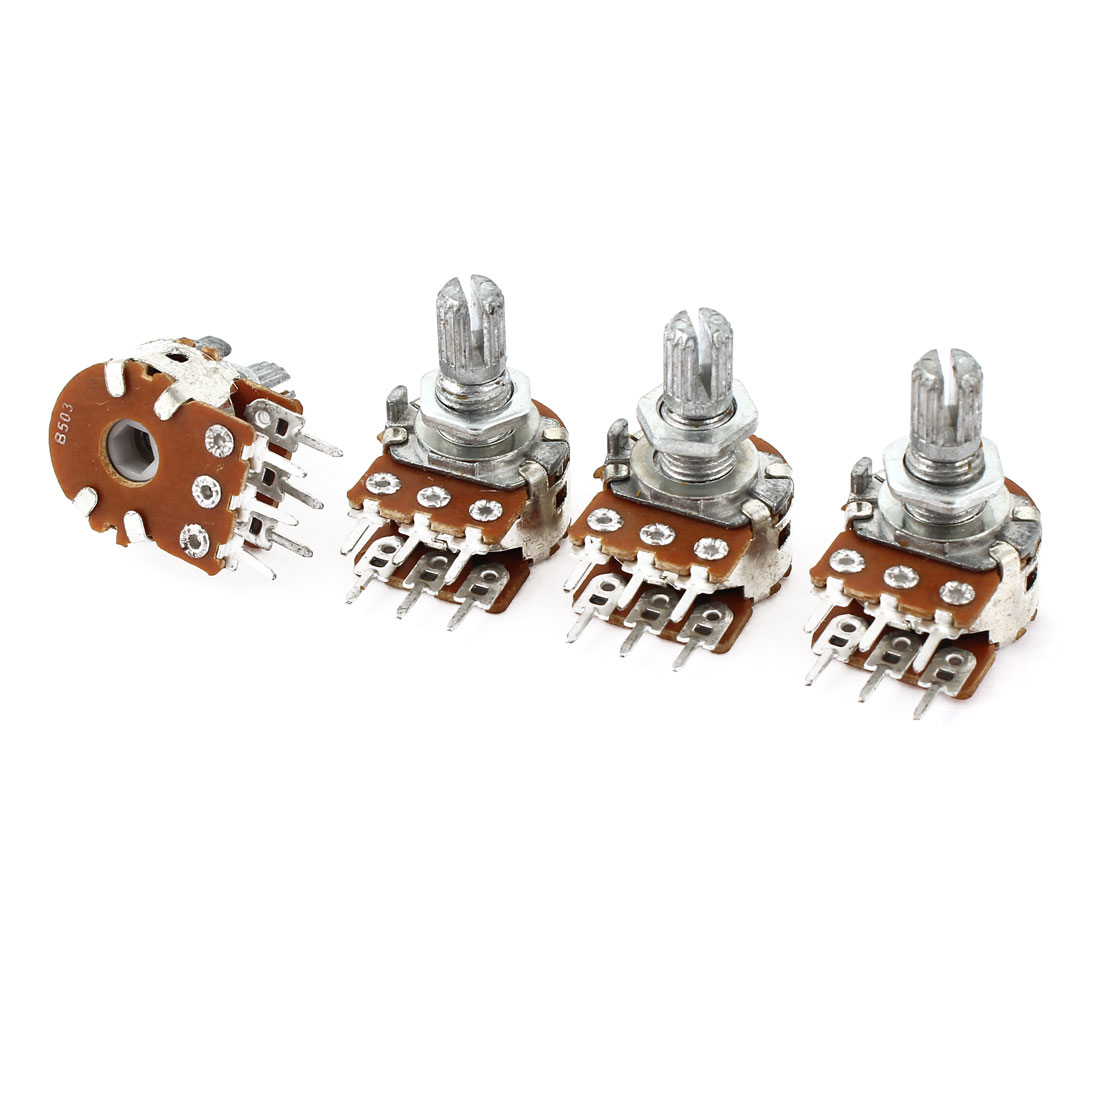 4Pcs 50K Ohm 15mm Shaft B Type Linear Dual Rotary Rotatable Taper Potentiometer